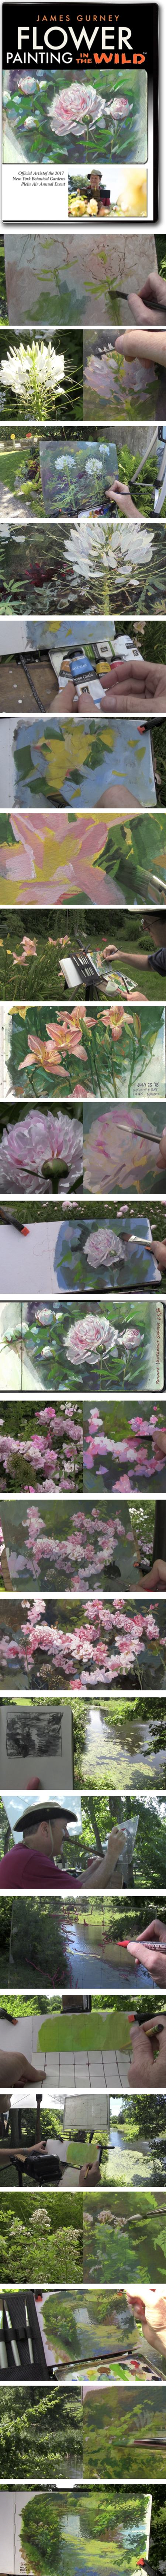 James Gurney Flower Painting in the Wild